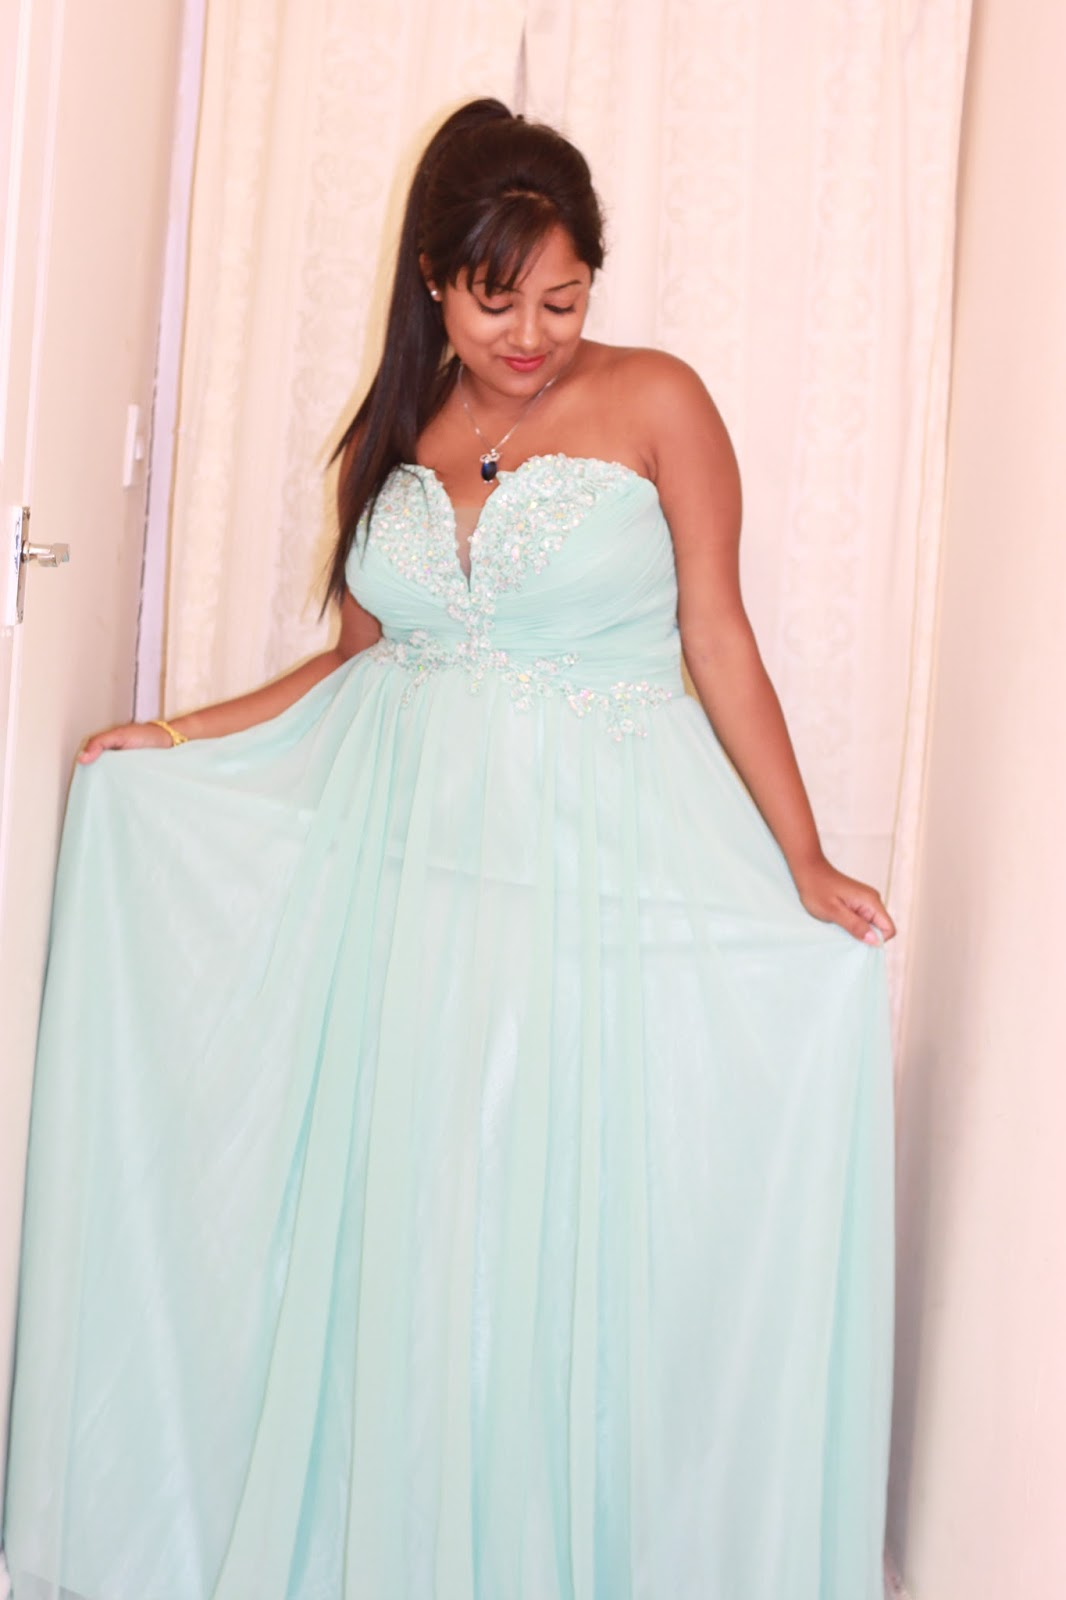 Evening Maxi Dresses For Weddings In India